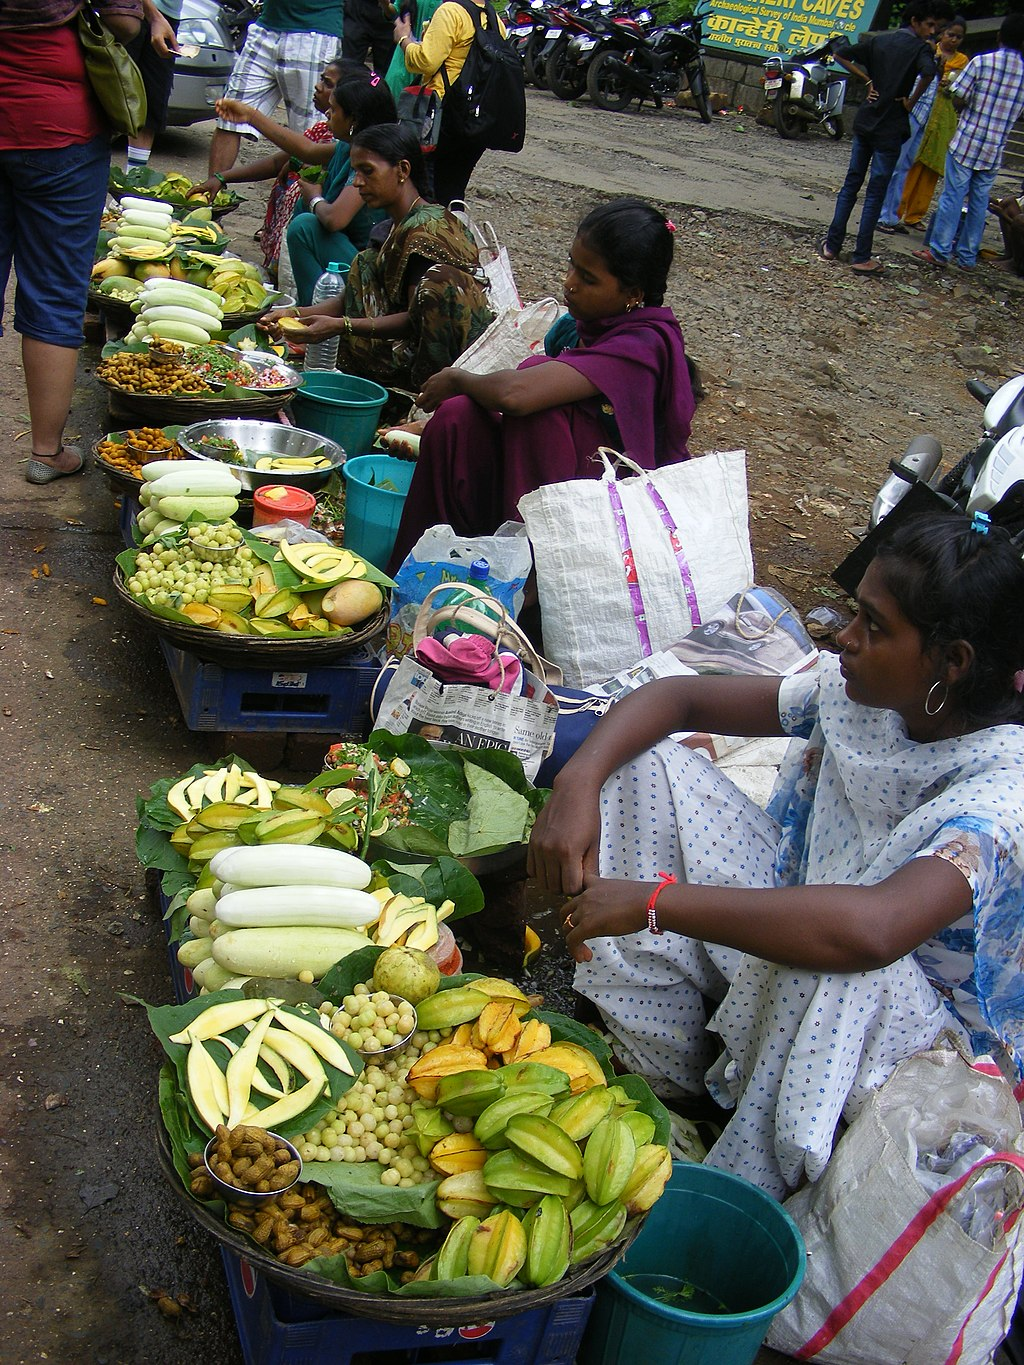 women selling wild Fruits, Non-timber Forest Produce in SGNP Mumbai Maharashtra by Raju Kasambe via Wikimedia Commons (CC BY SA 4.0